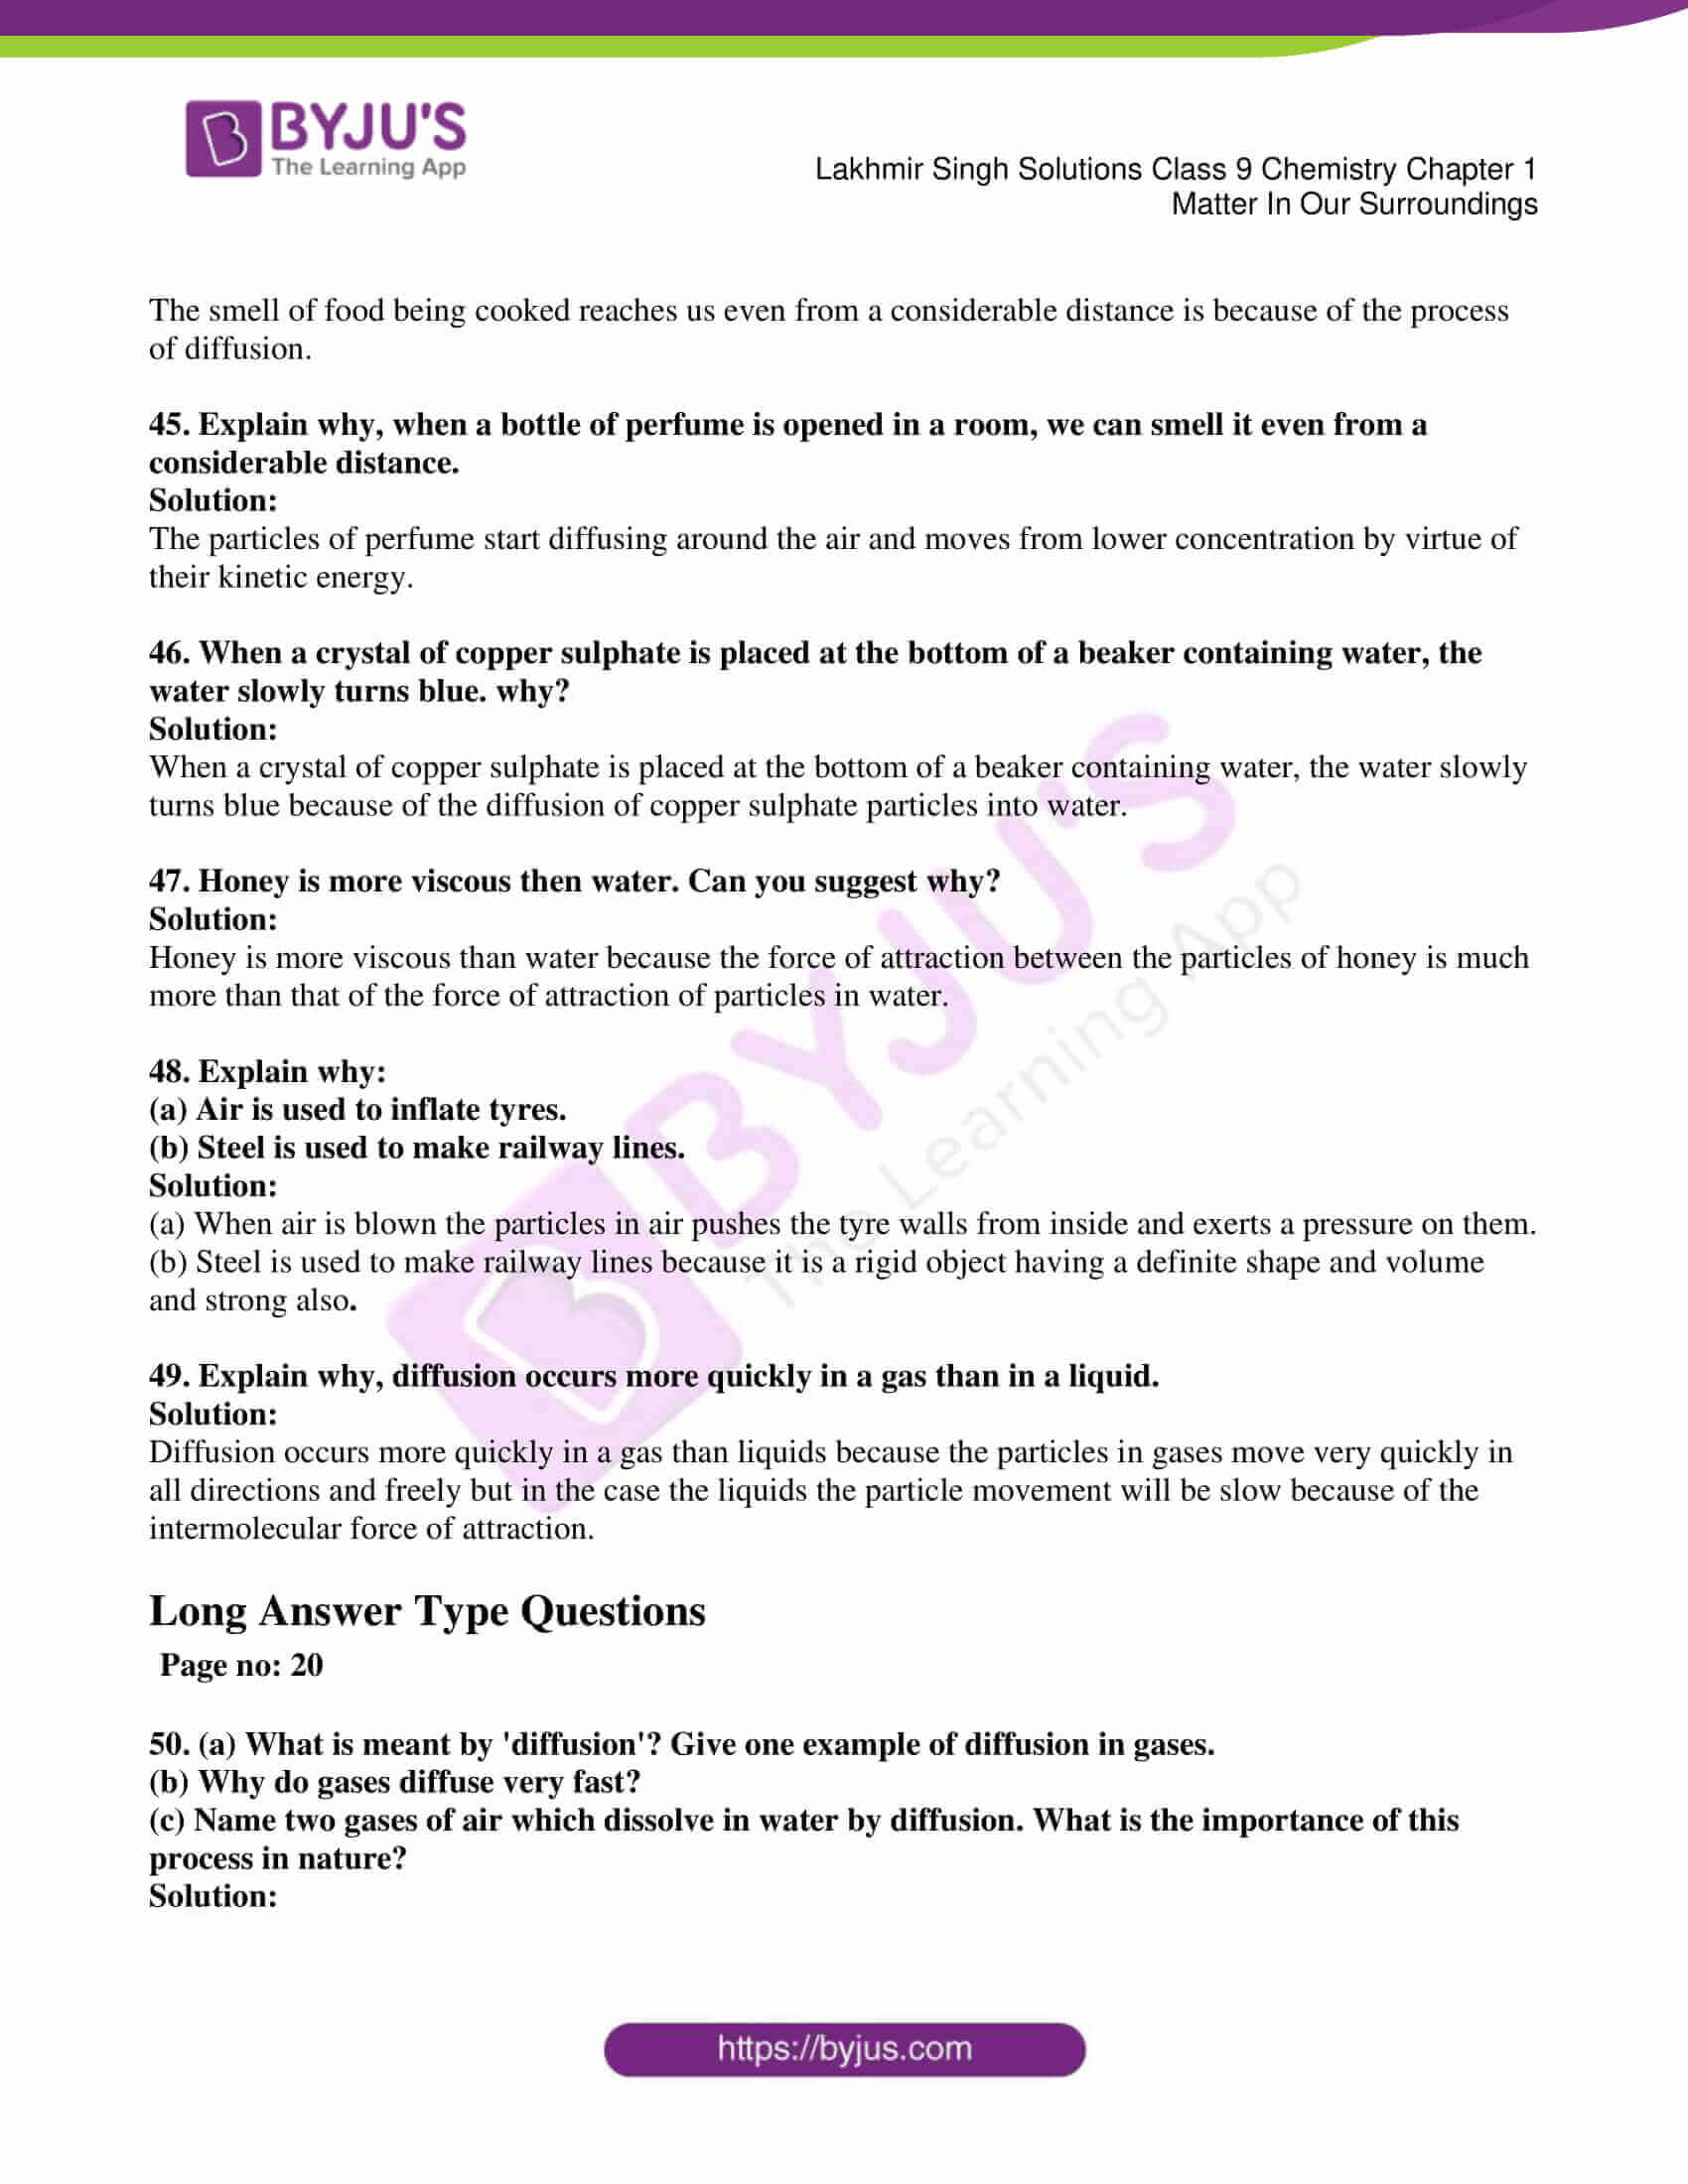 lakhmir singh solutions class 9 chemistry chapter 1 08